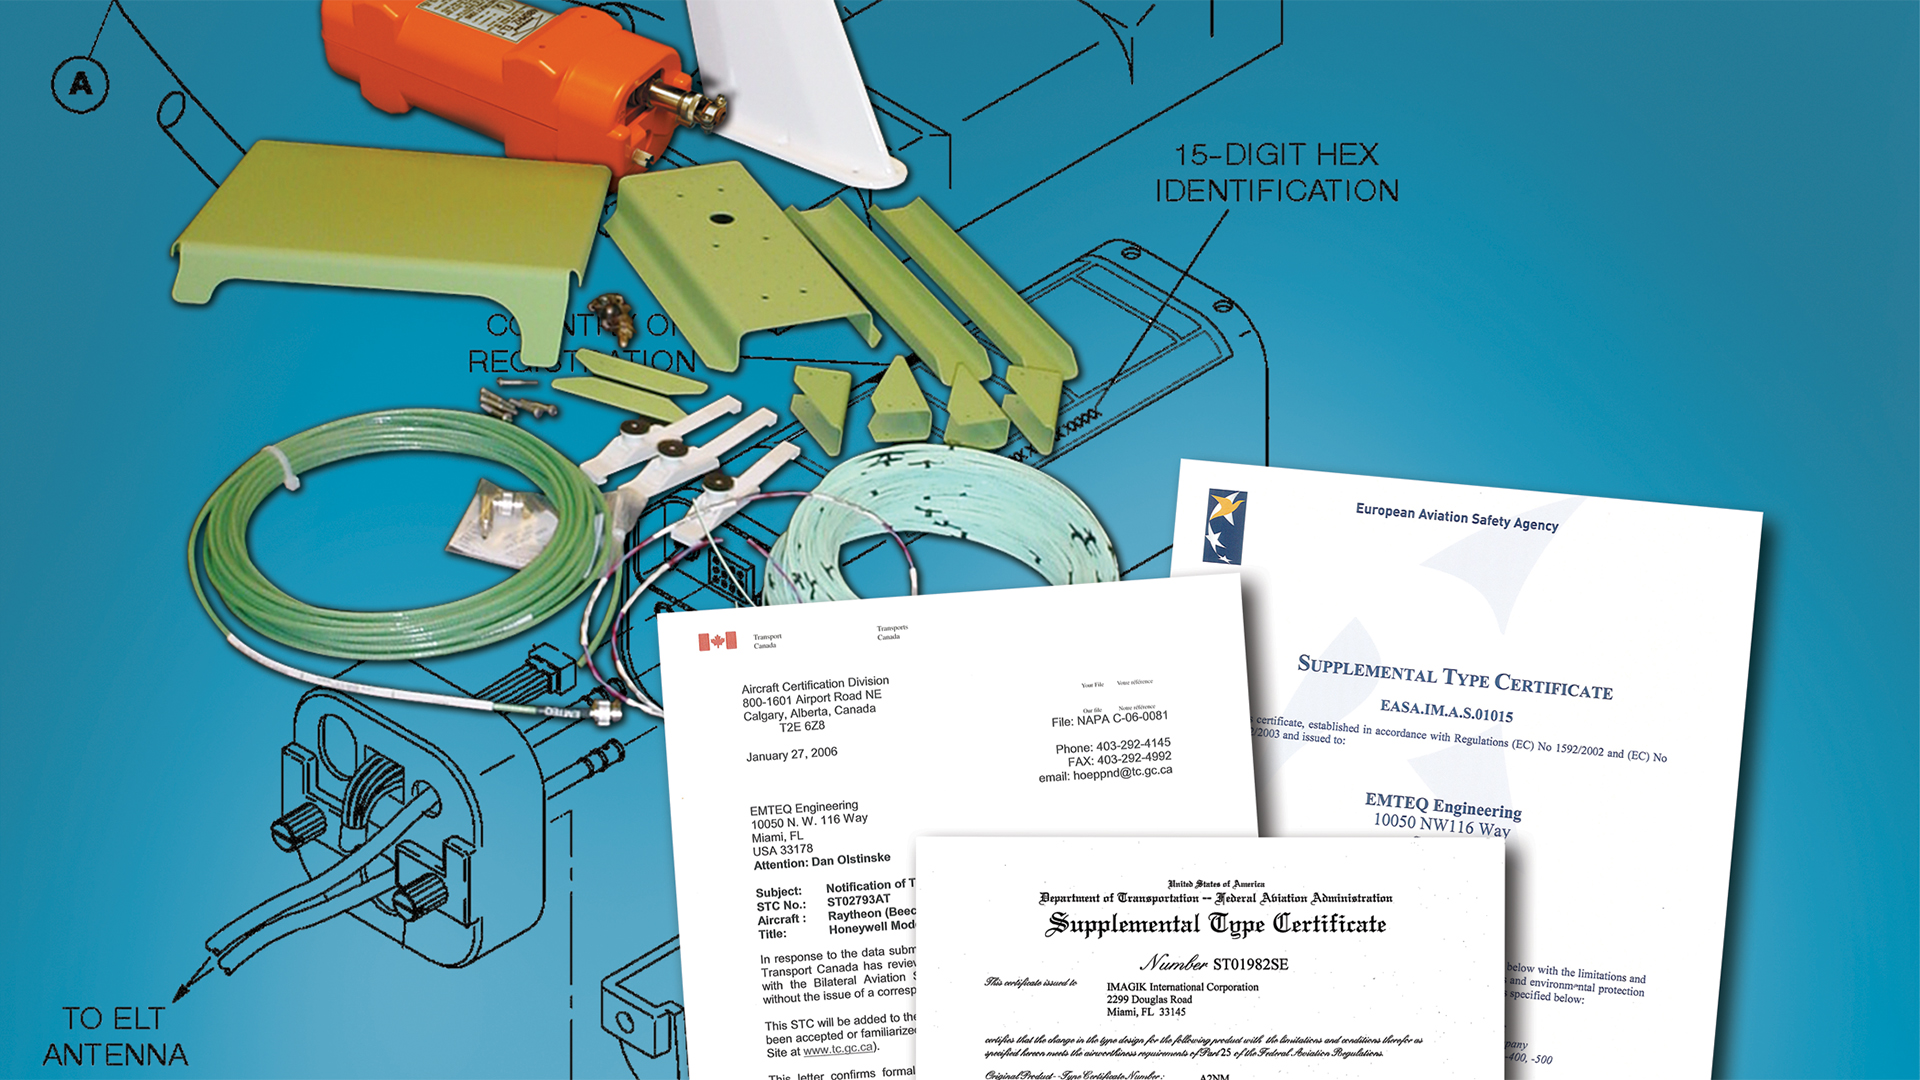 Engineering Certification Stcs